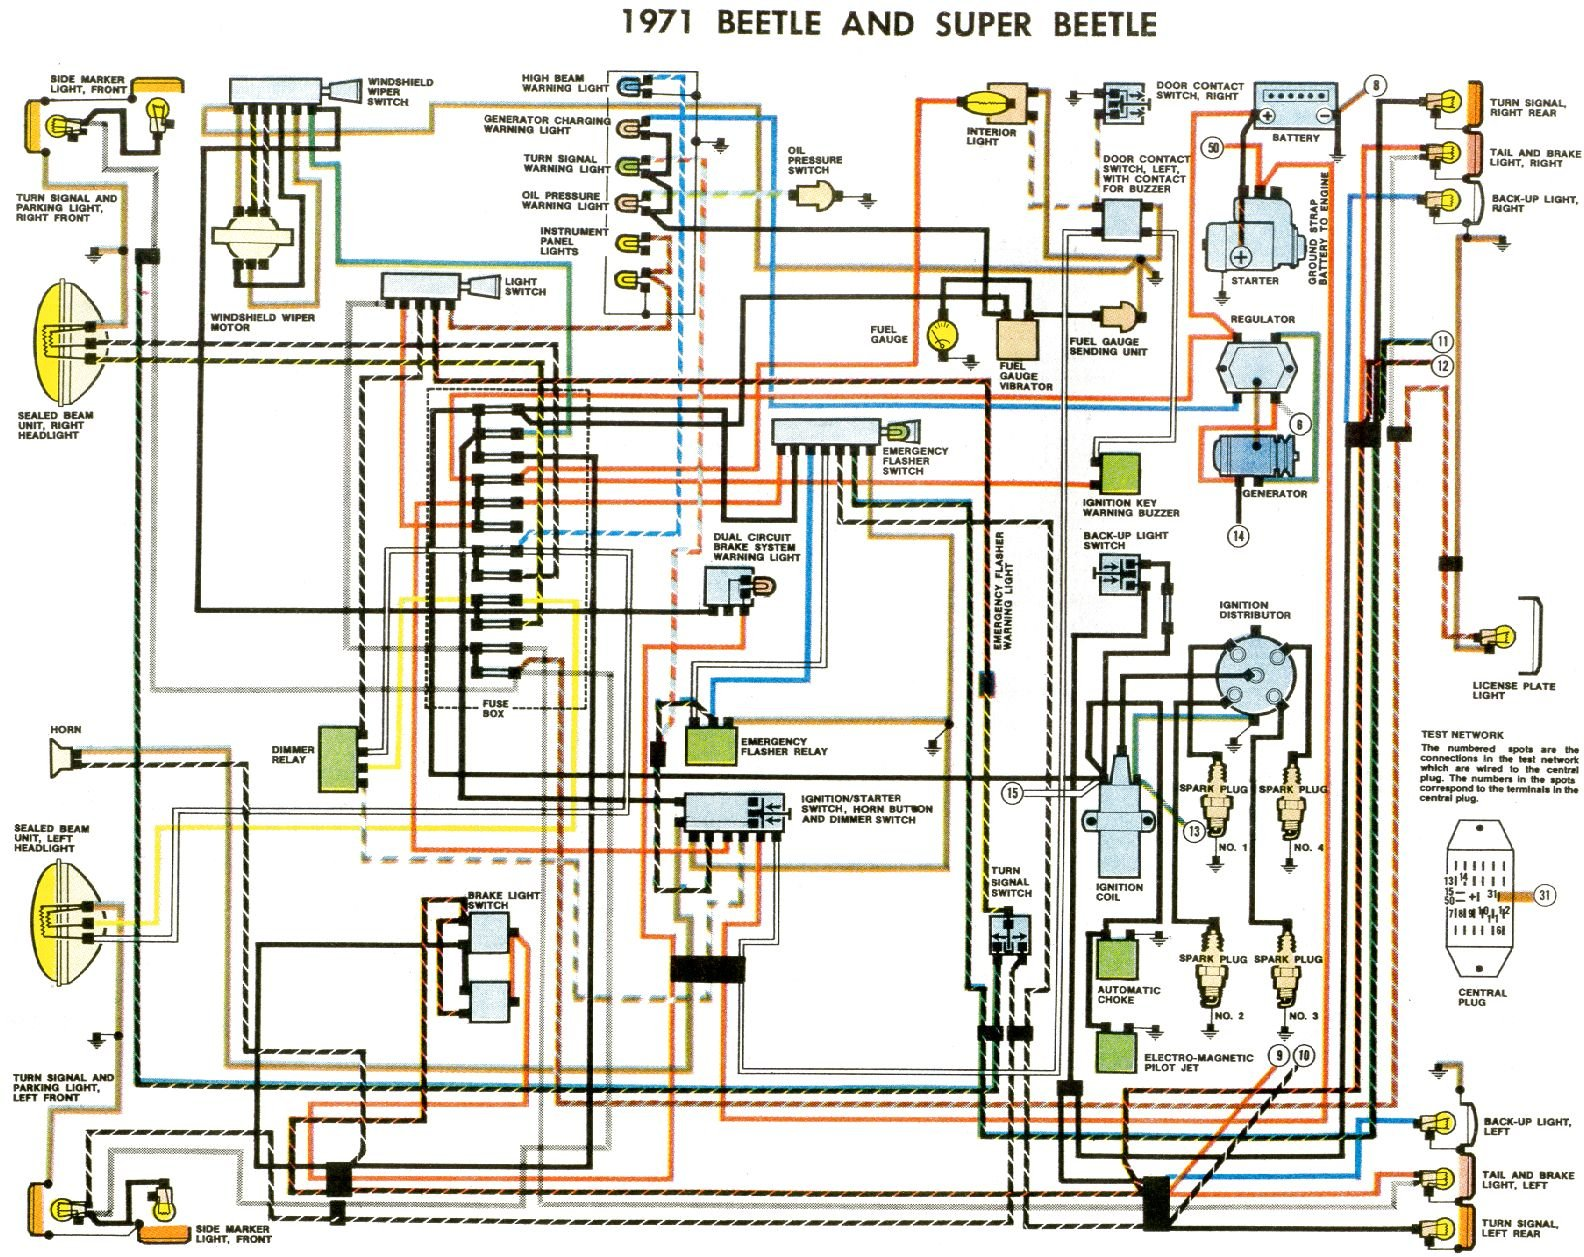 Turbo Beetle Fuse Box Diagram 2000 List Of Schematic Circuit Auto Wiring 80 Camaro Electrical Rh Psu Edu Co Fr Sanjaydutt Me